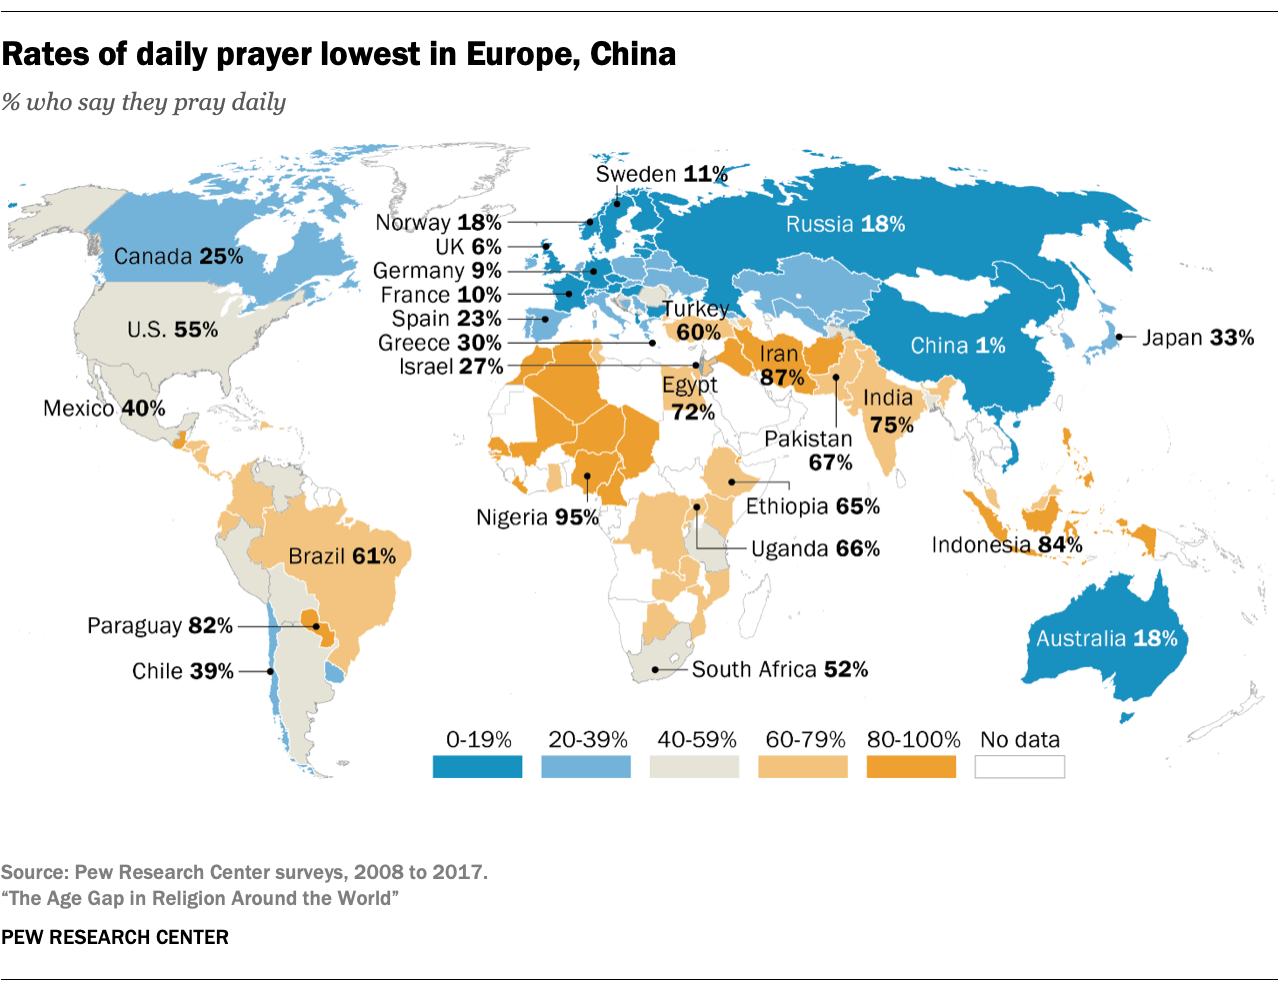 Rates of daily prayer lowest in Europe, China